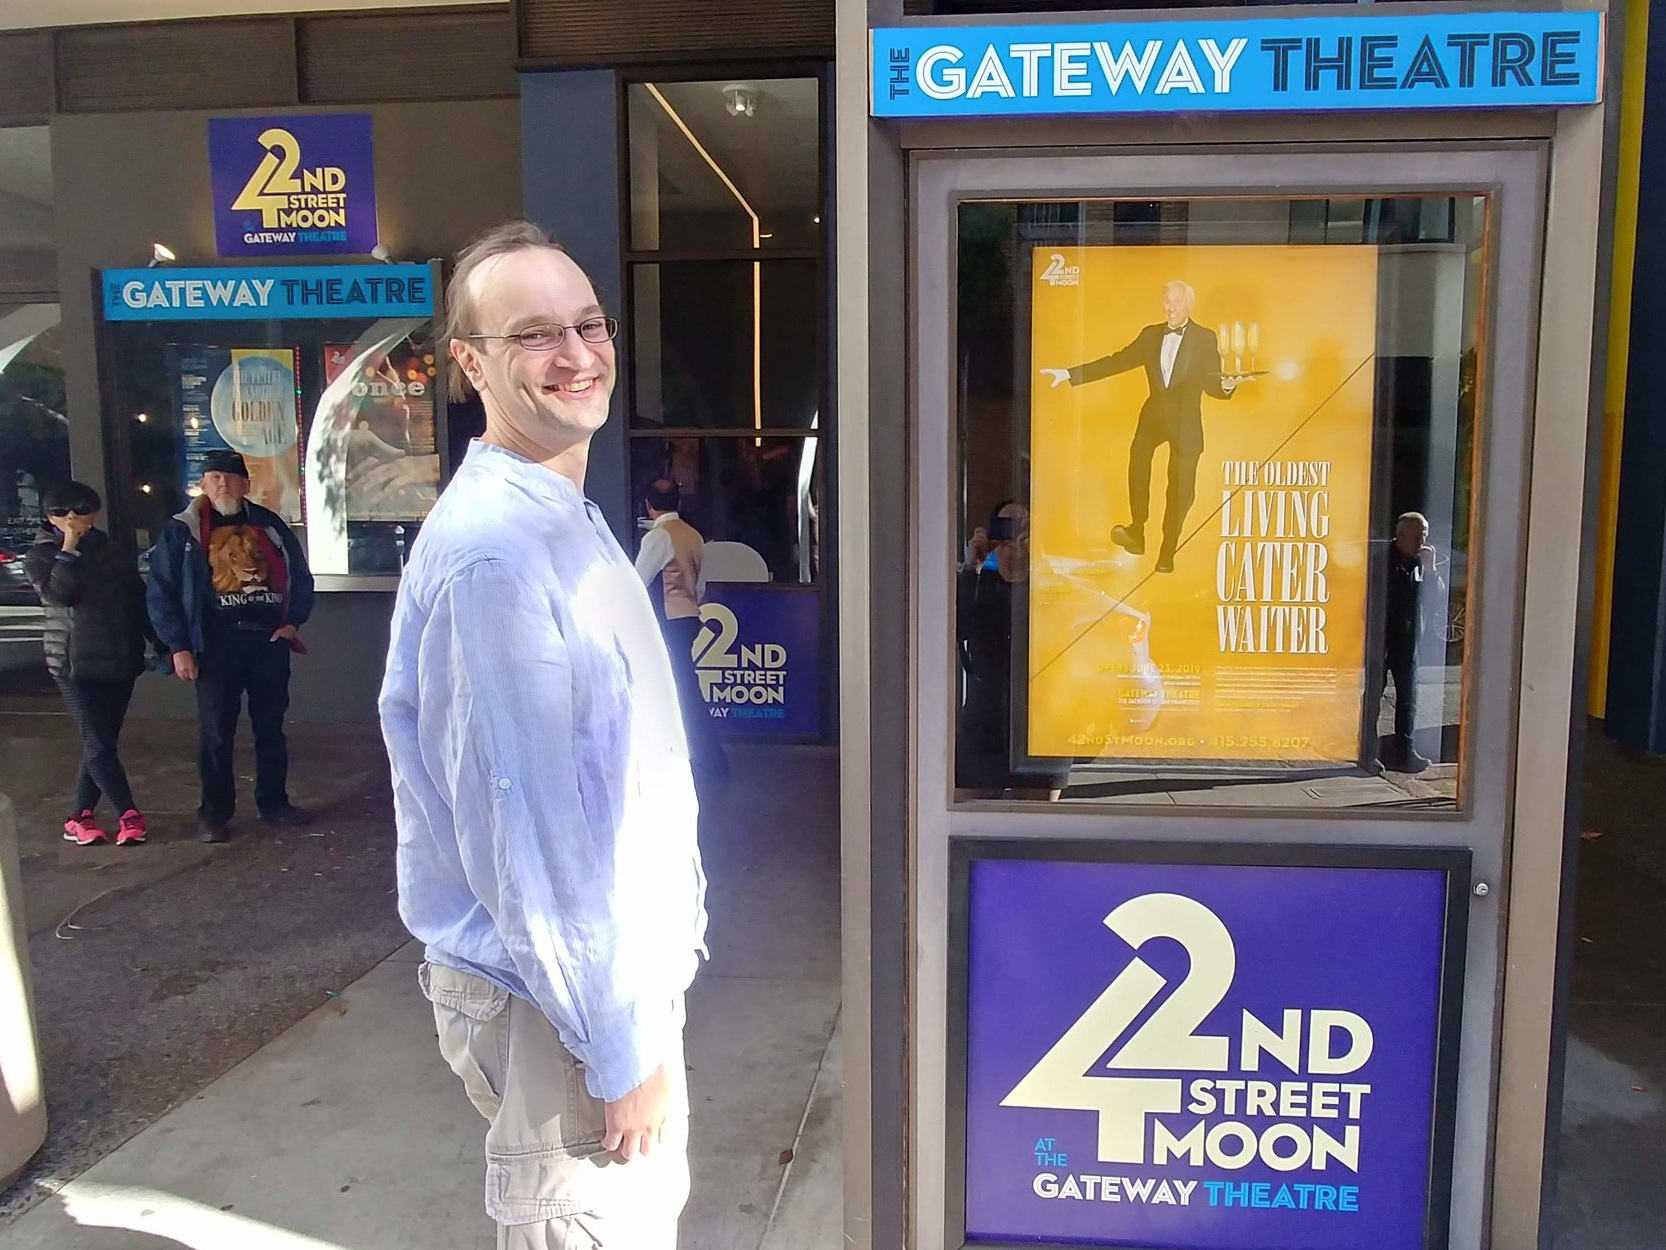 The-Oldest-Living-Cater-Waiter-One-Man-Show-Performance-Play-2019-Gateway-Theatre-San-Francisco-Embarcadero-District-42nd-Street-Moon-Michael-Patrick-Gaffney-Sandy-By-The-Bay-SandyByTheBay-SFFoodPhotography-SF-Food-11.jpg